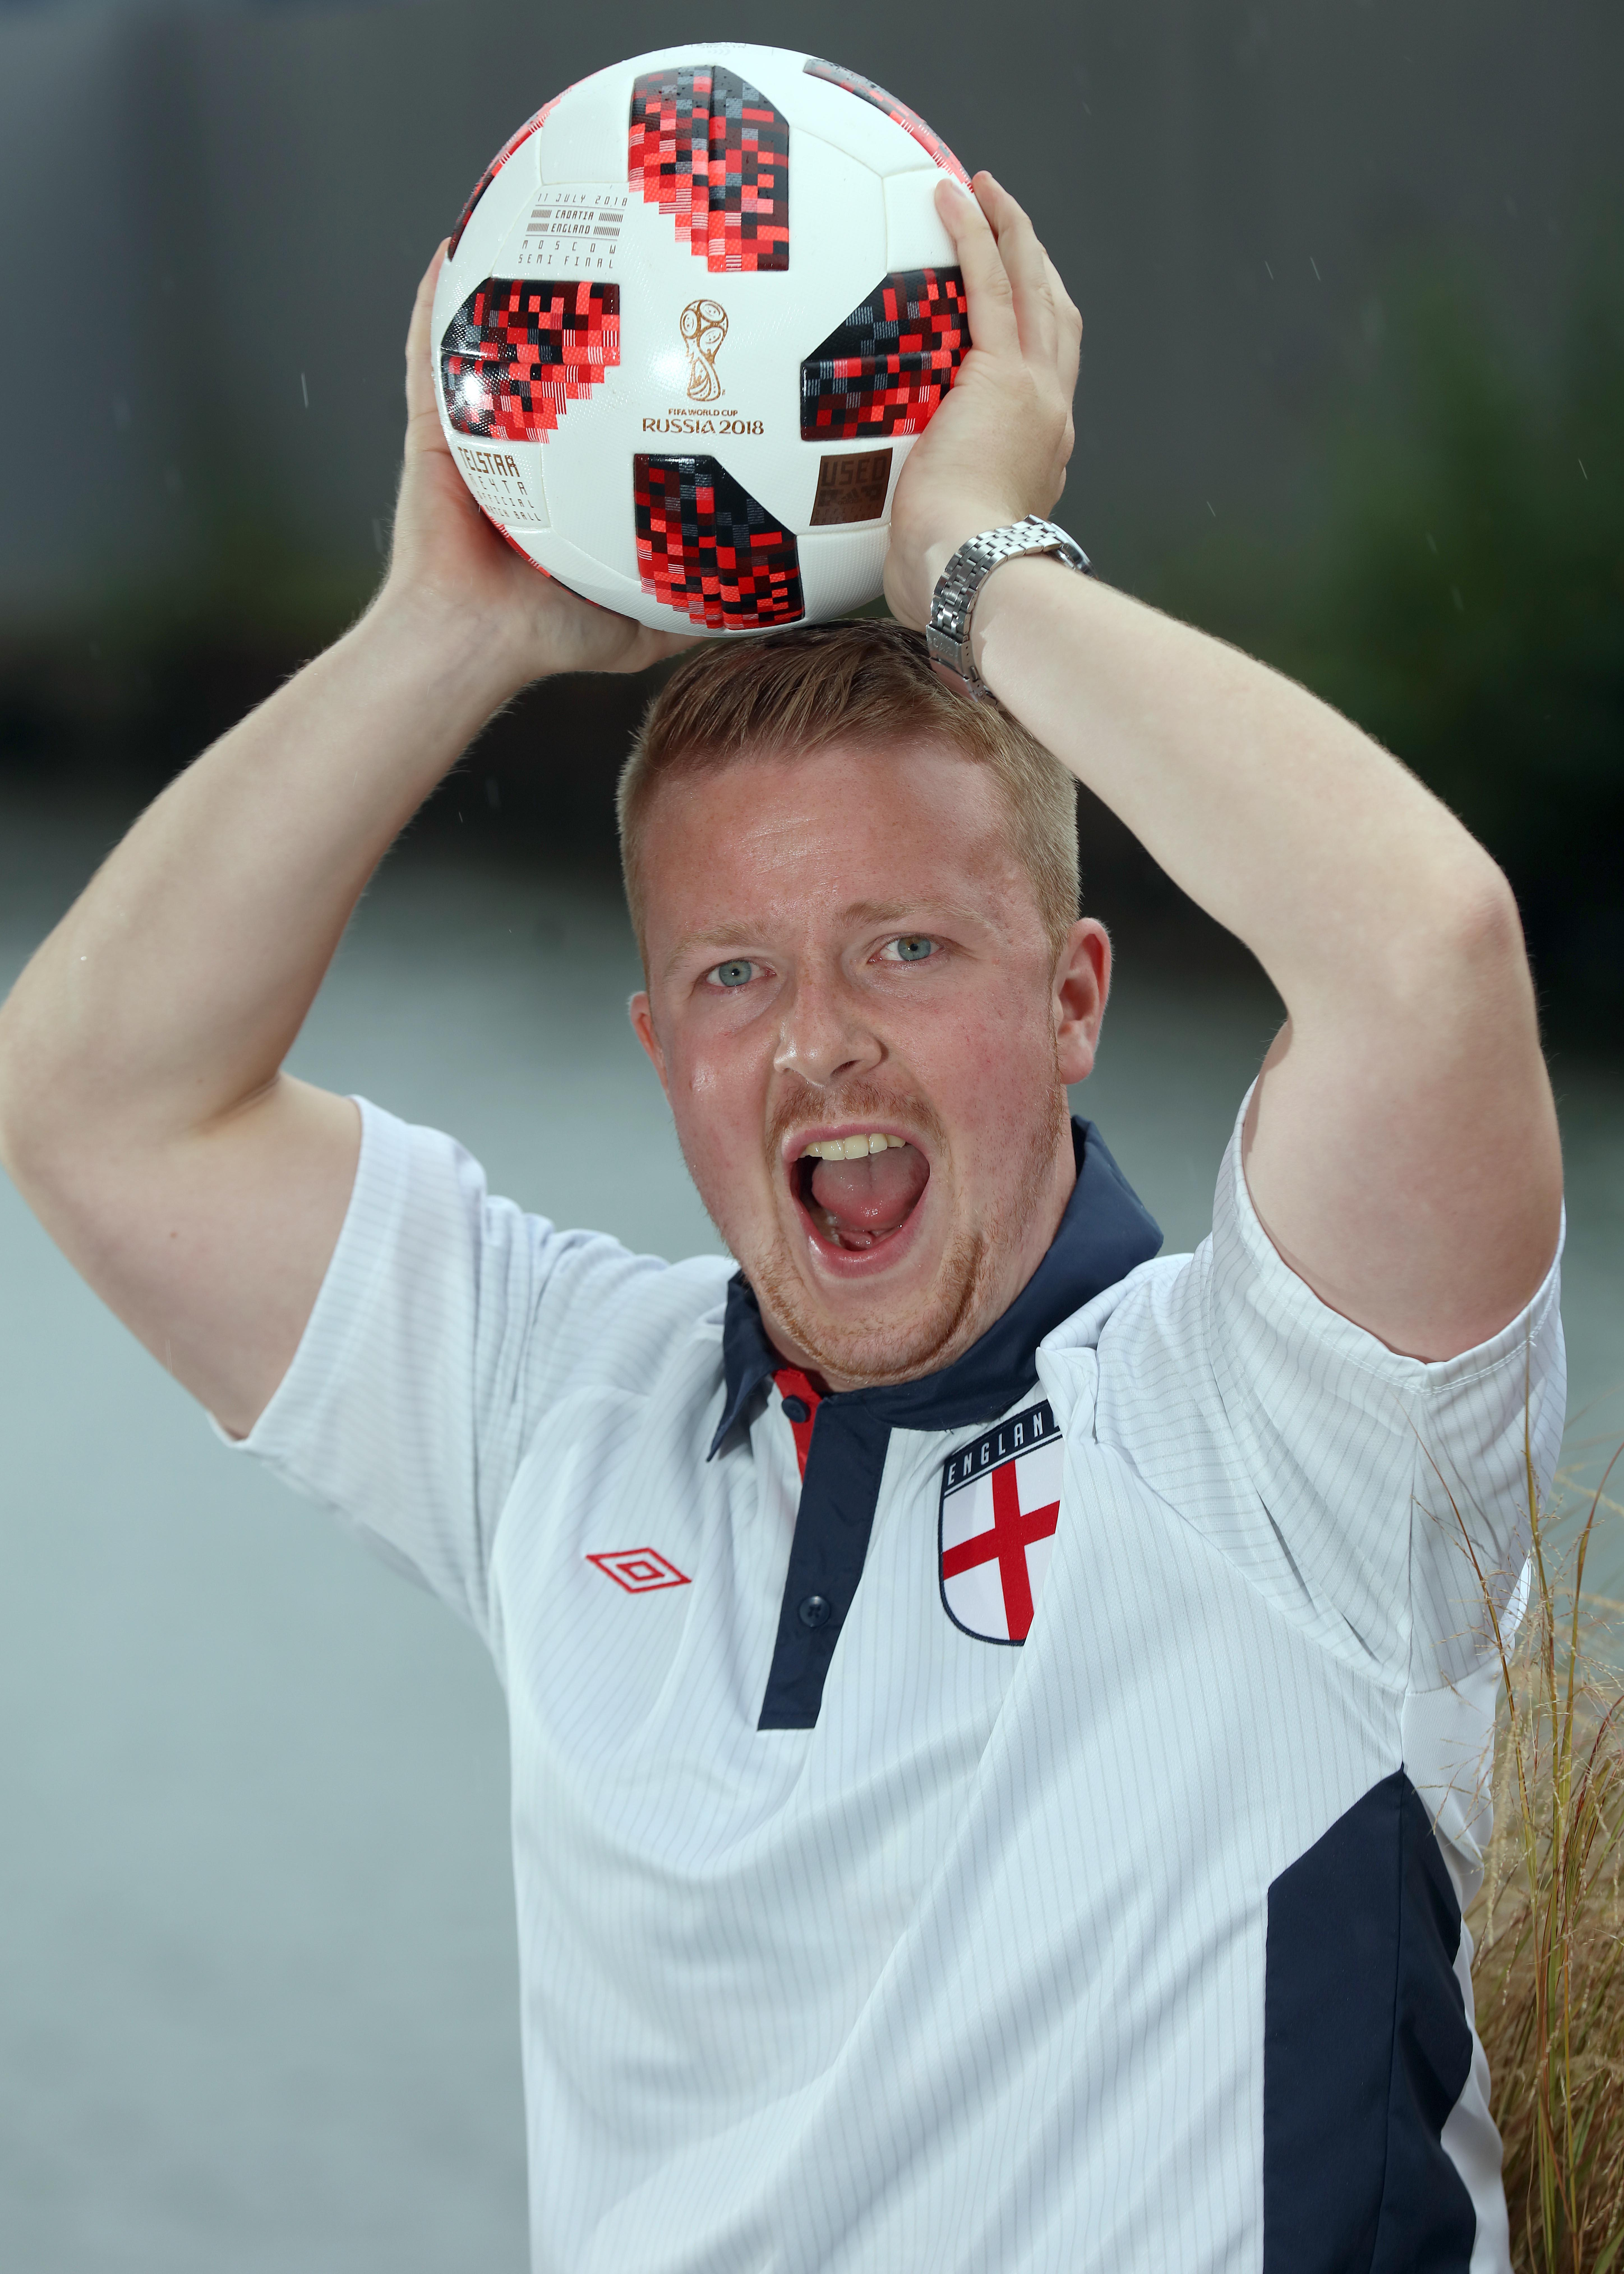 Christian Walters couldn't believe it when he found out he won the England World Cup semi-final ball